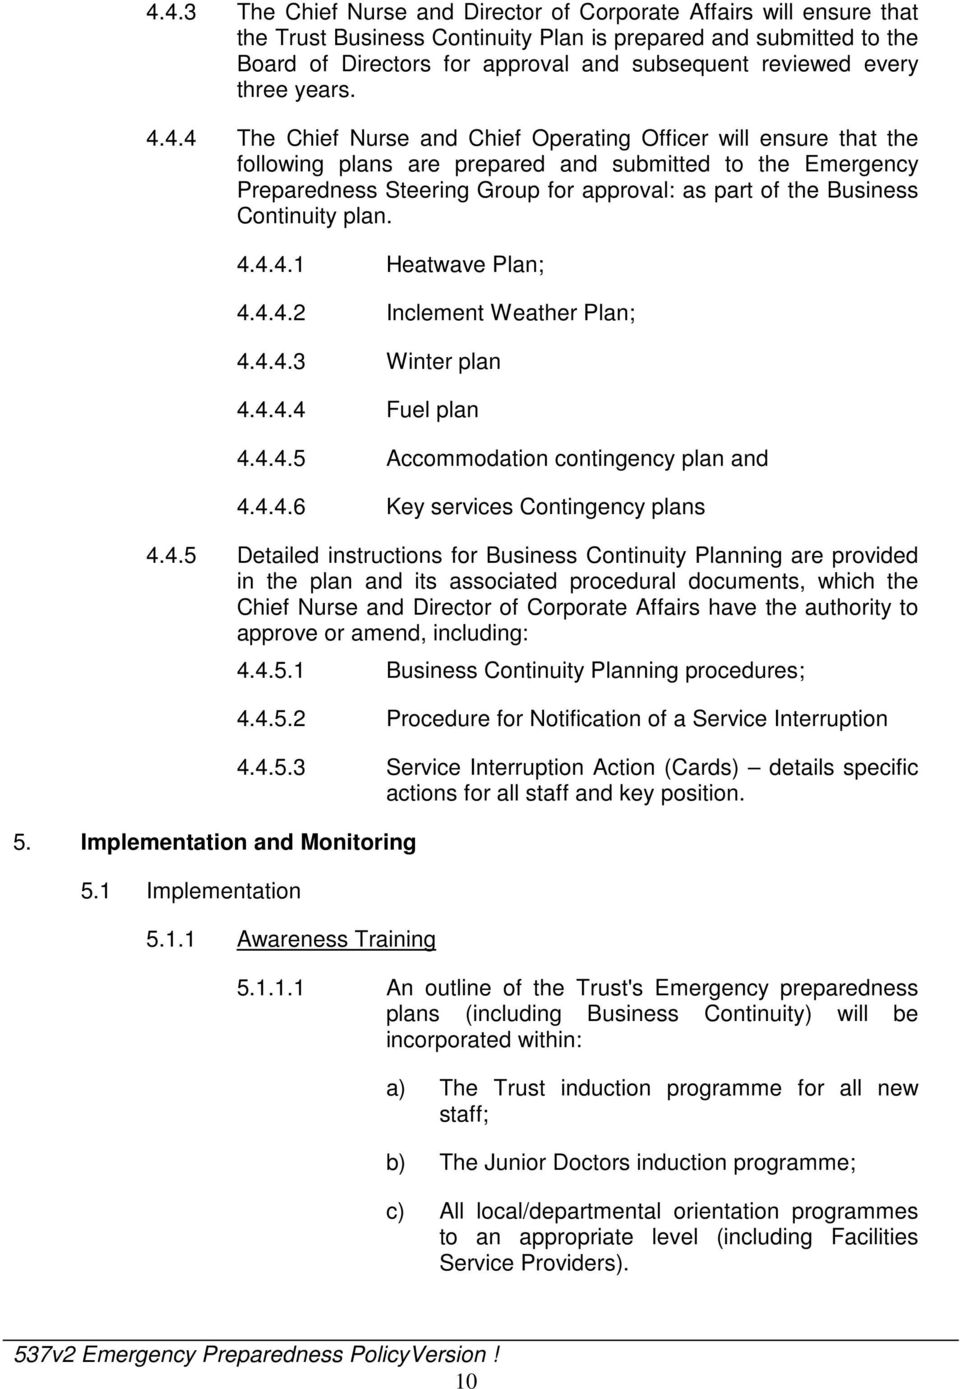 4.4 The Chief Nurse and Chief Operating Officer will ensure that the following plans are prepared and submitted to the Emergency Preparedness Steering Group for approval: as part of the Business